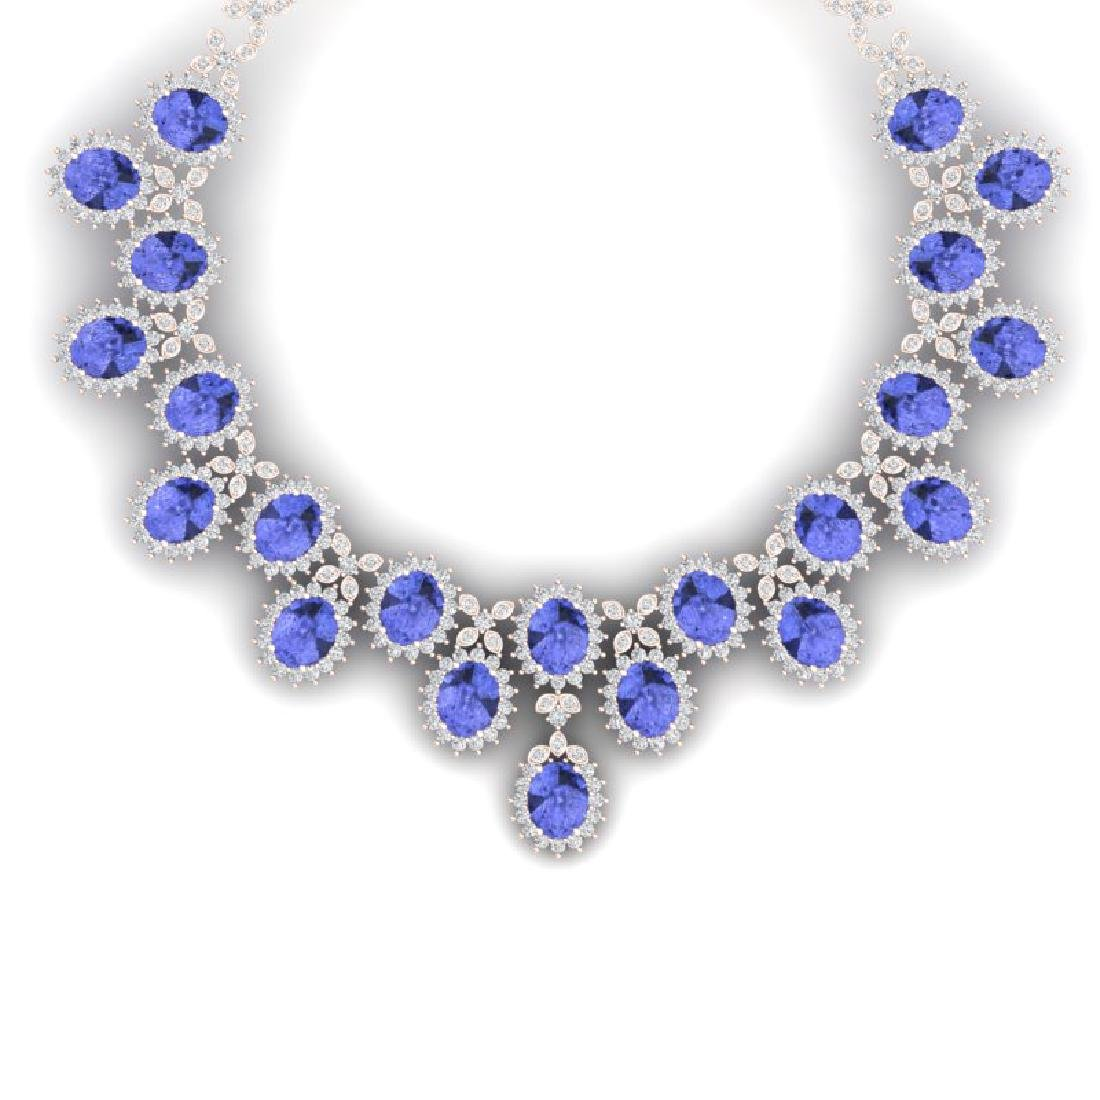 86 CTW Royalty Tanzanite & VS Diamond Necklace 18K Rose